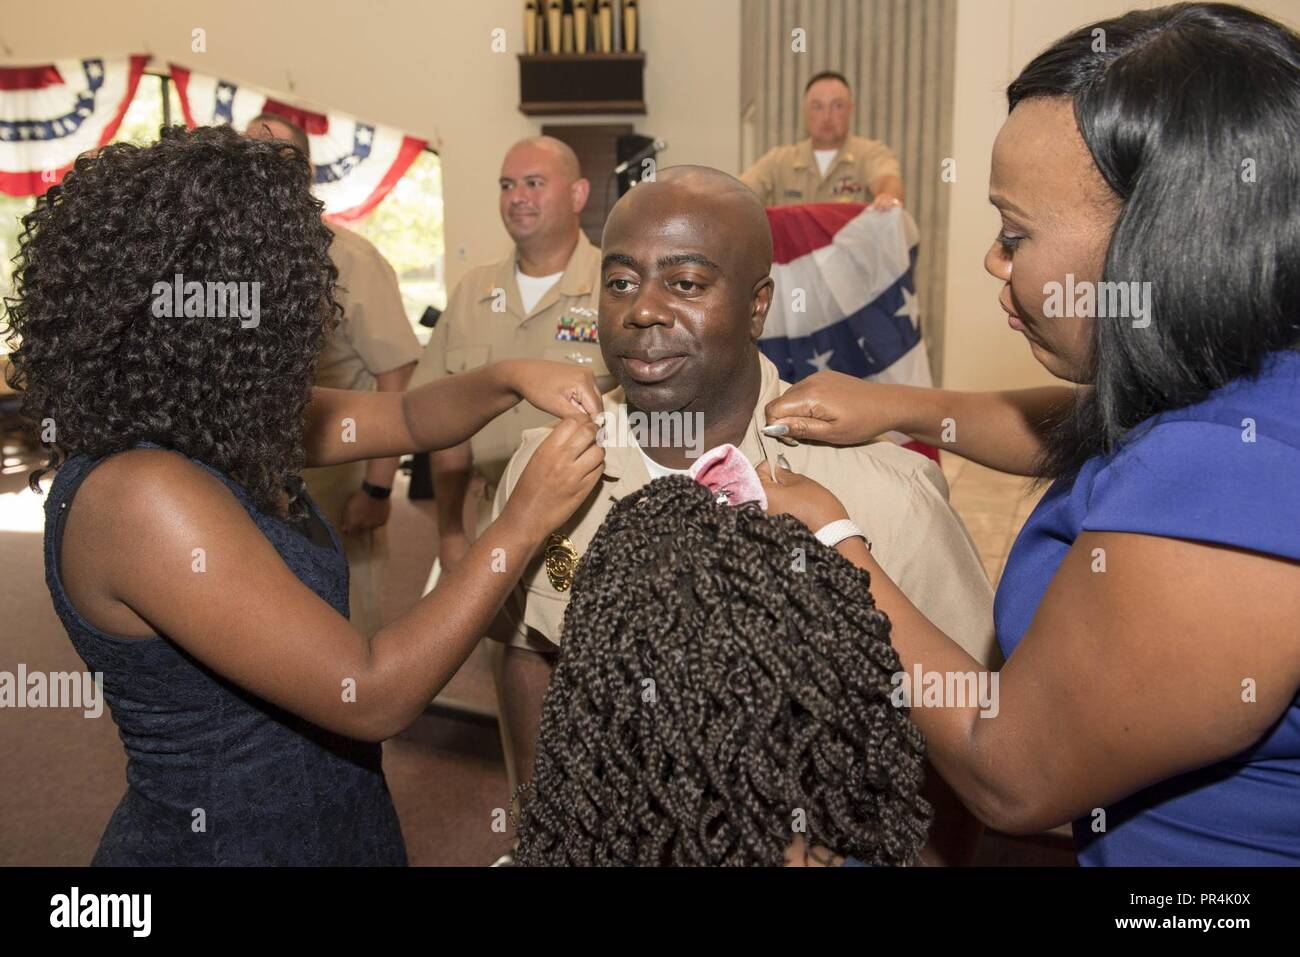 KINGS BAY, Georgia (Sept. 14, 2018) Chief Master at Arms Alvin Jenkins Jr. is pinned with his anchors by his family during Naval Submarine Base Kings Bay's 2018 chief petty officer pinning ceremony.  The base is home to six of the Ohio-class ballistic-missile submarines that make up the most survivable leg of the nuclear missile triad. - Stock Image